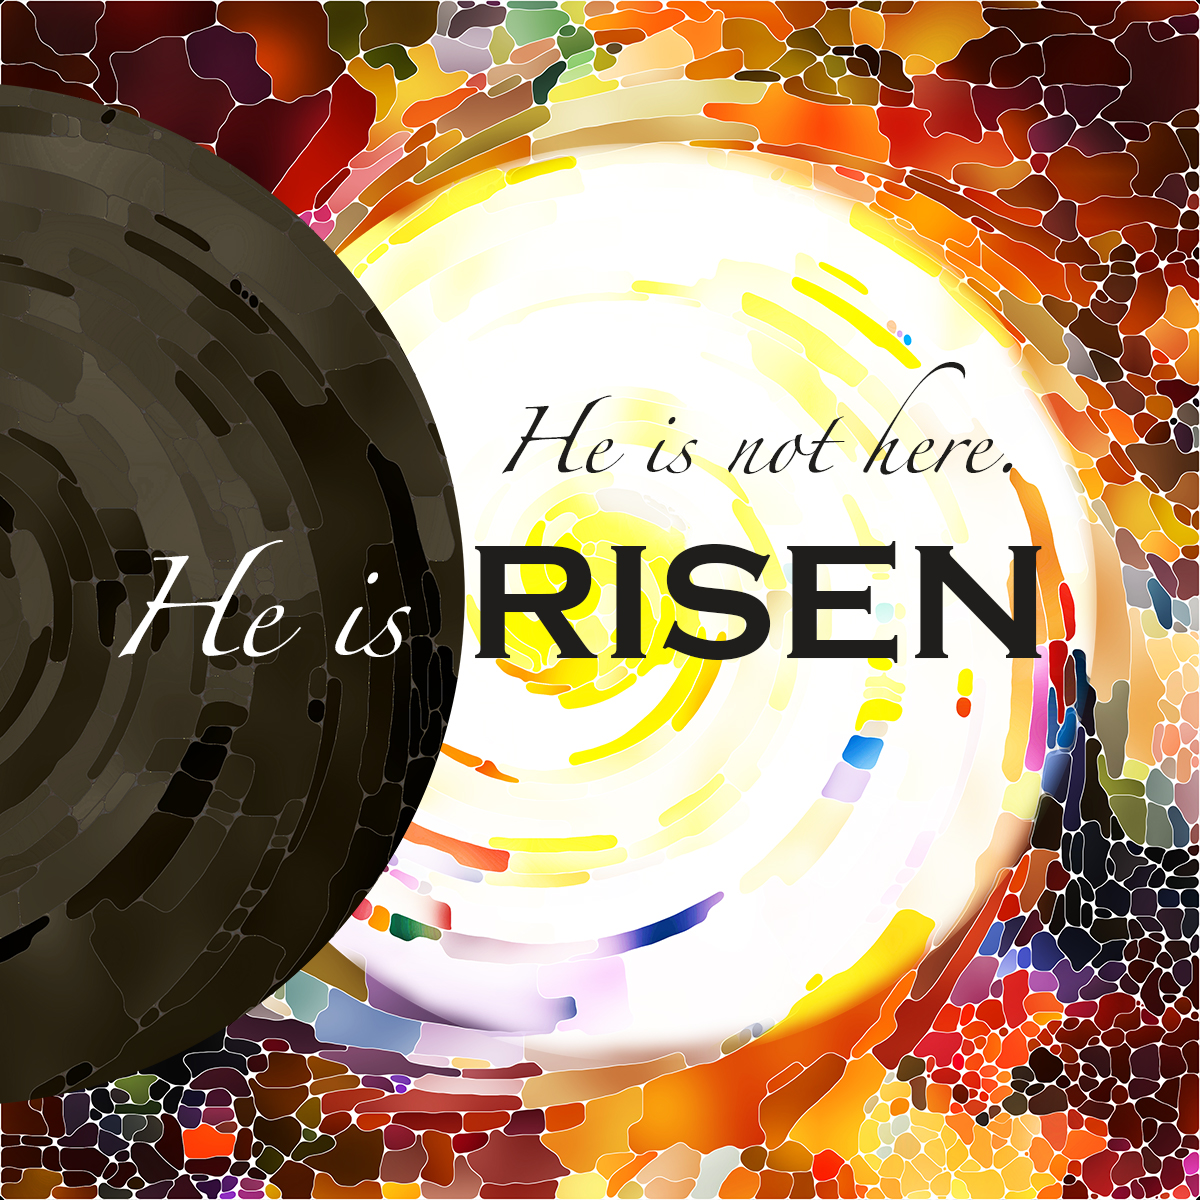 2021-04-04-easter-graphic-ver.-2-1